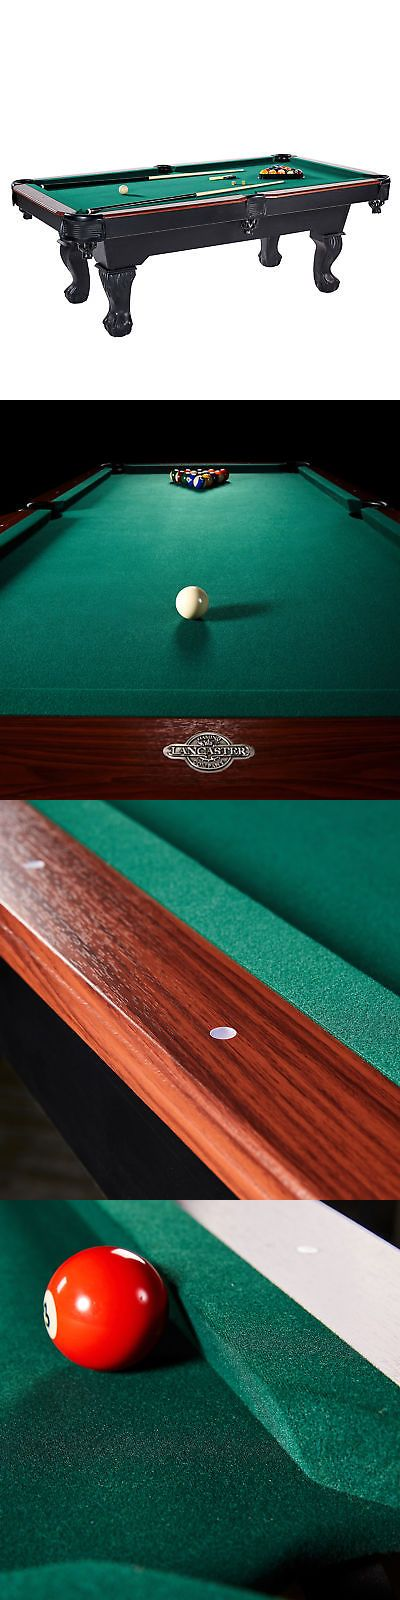 Billiards 21567 Lancaster 90 Inch Traditional Full Size Billiard Pool Table Set W Accessories It Now Only 599 99 On Ebay